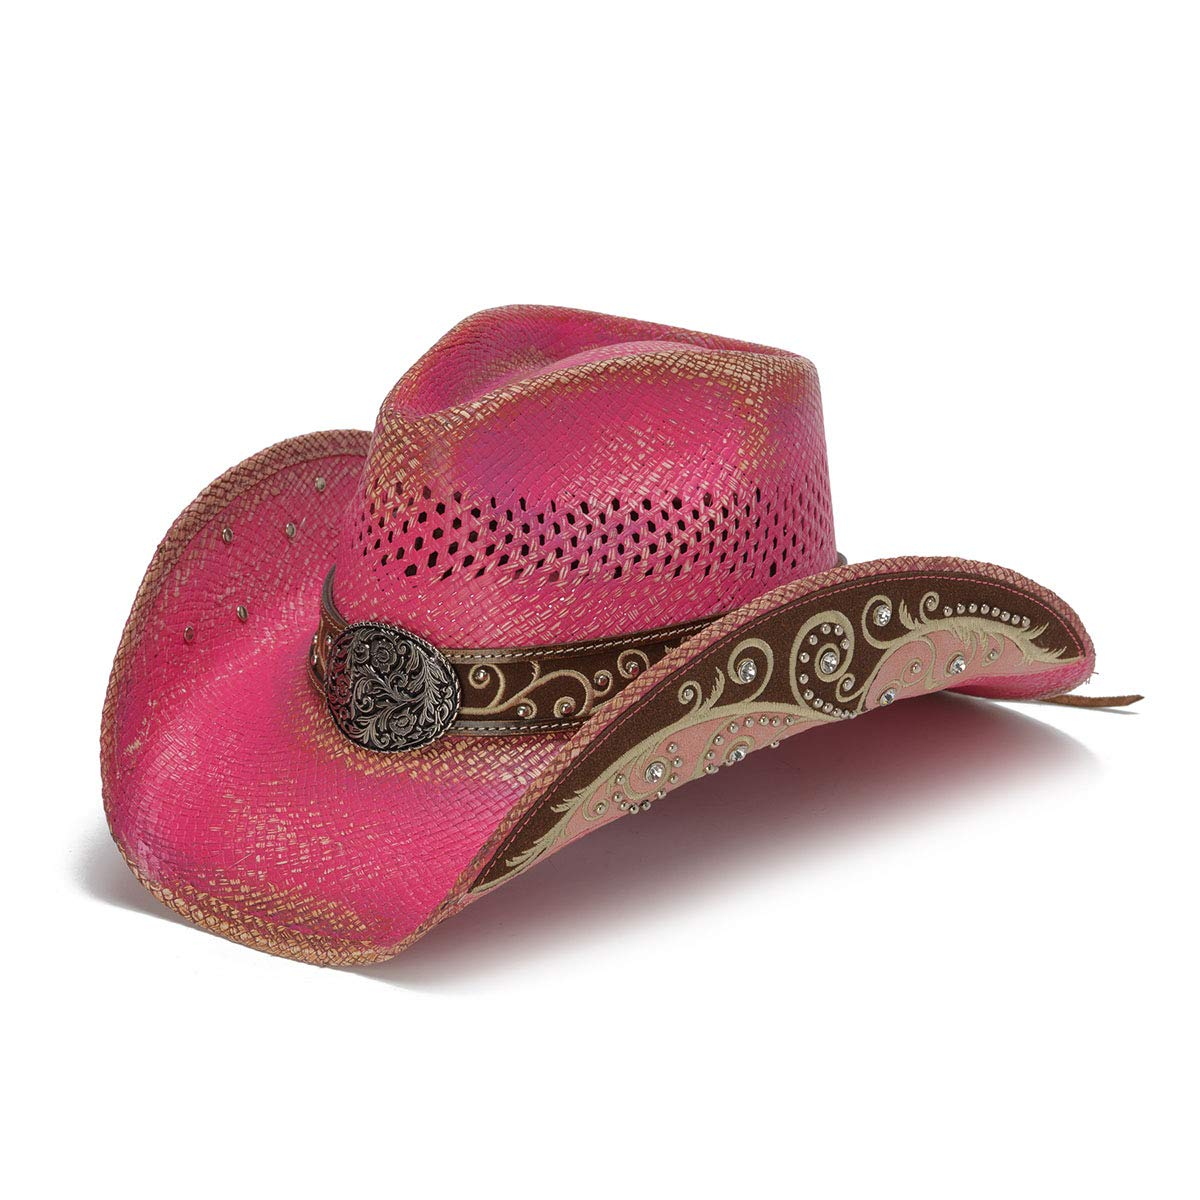 Stampede Hats Women's Burn The Breeze Flower Filigree Cowboy Hat M Pink